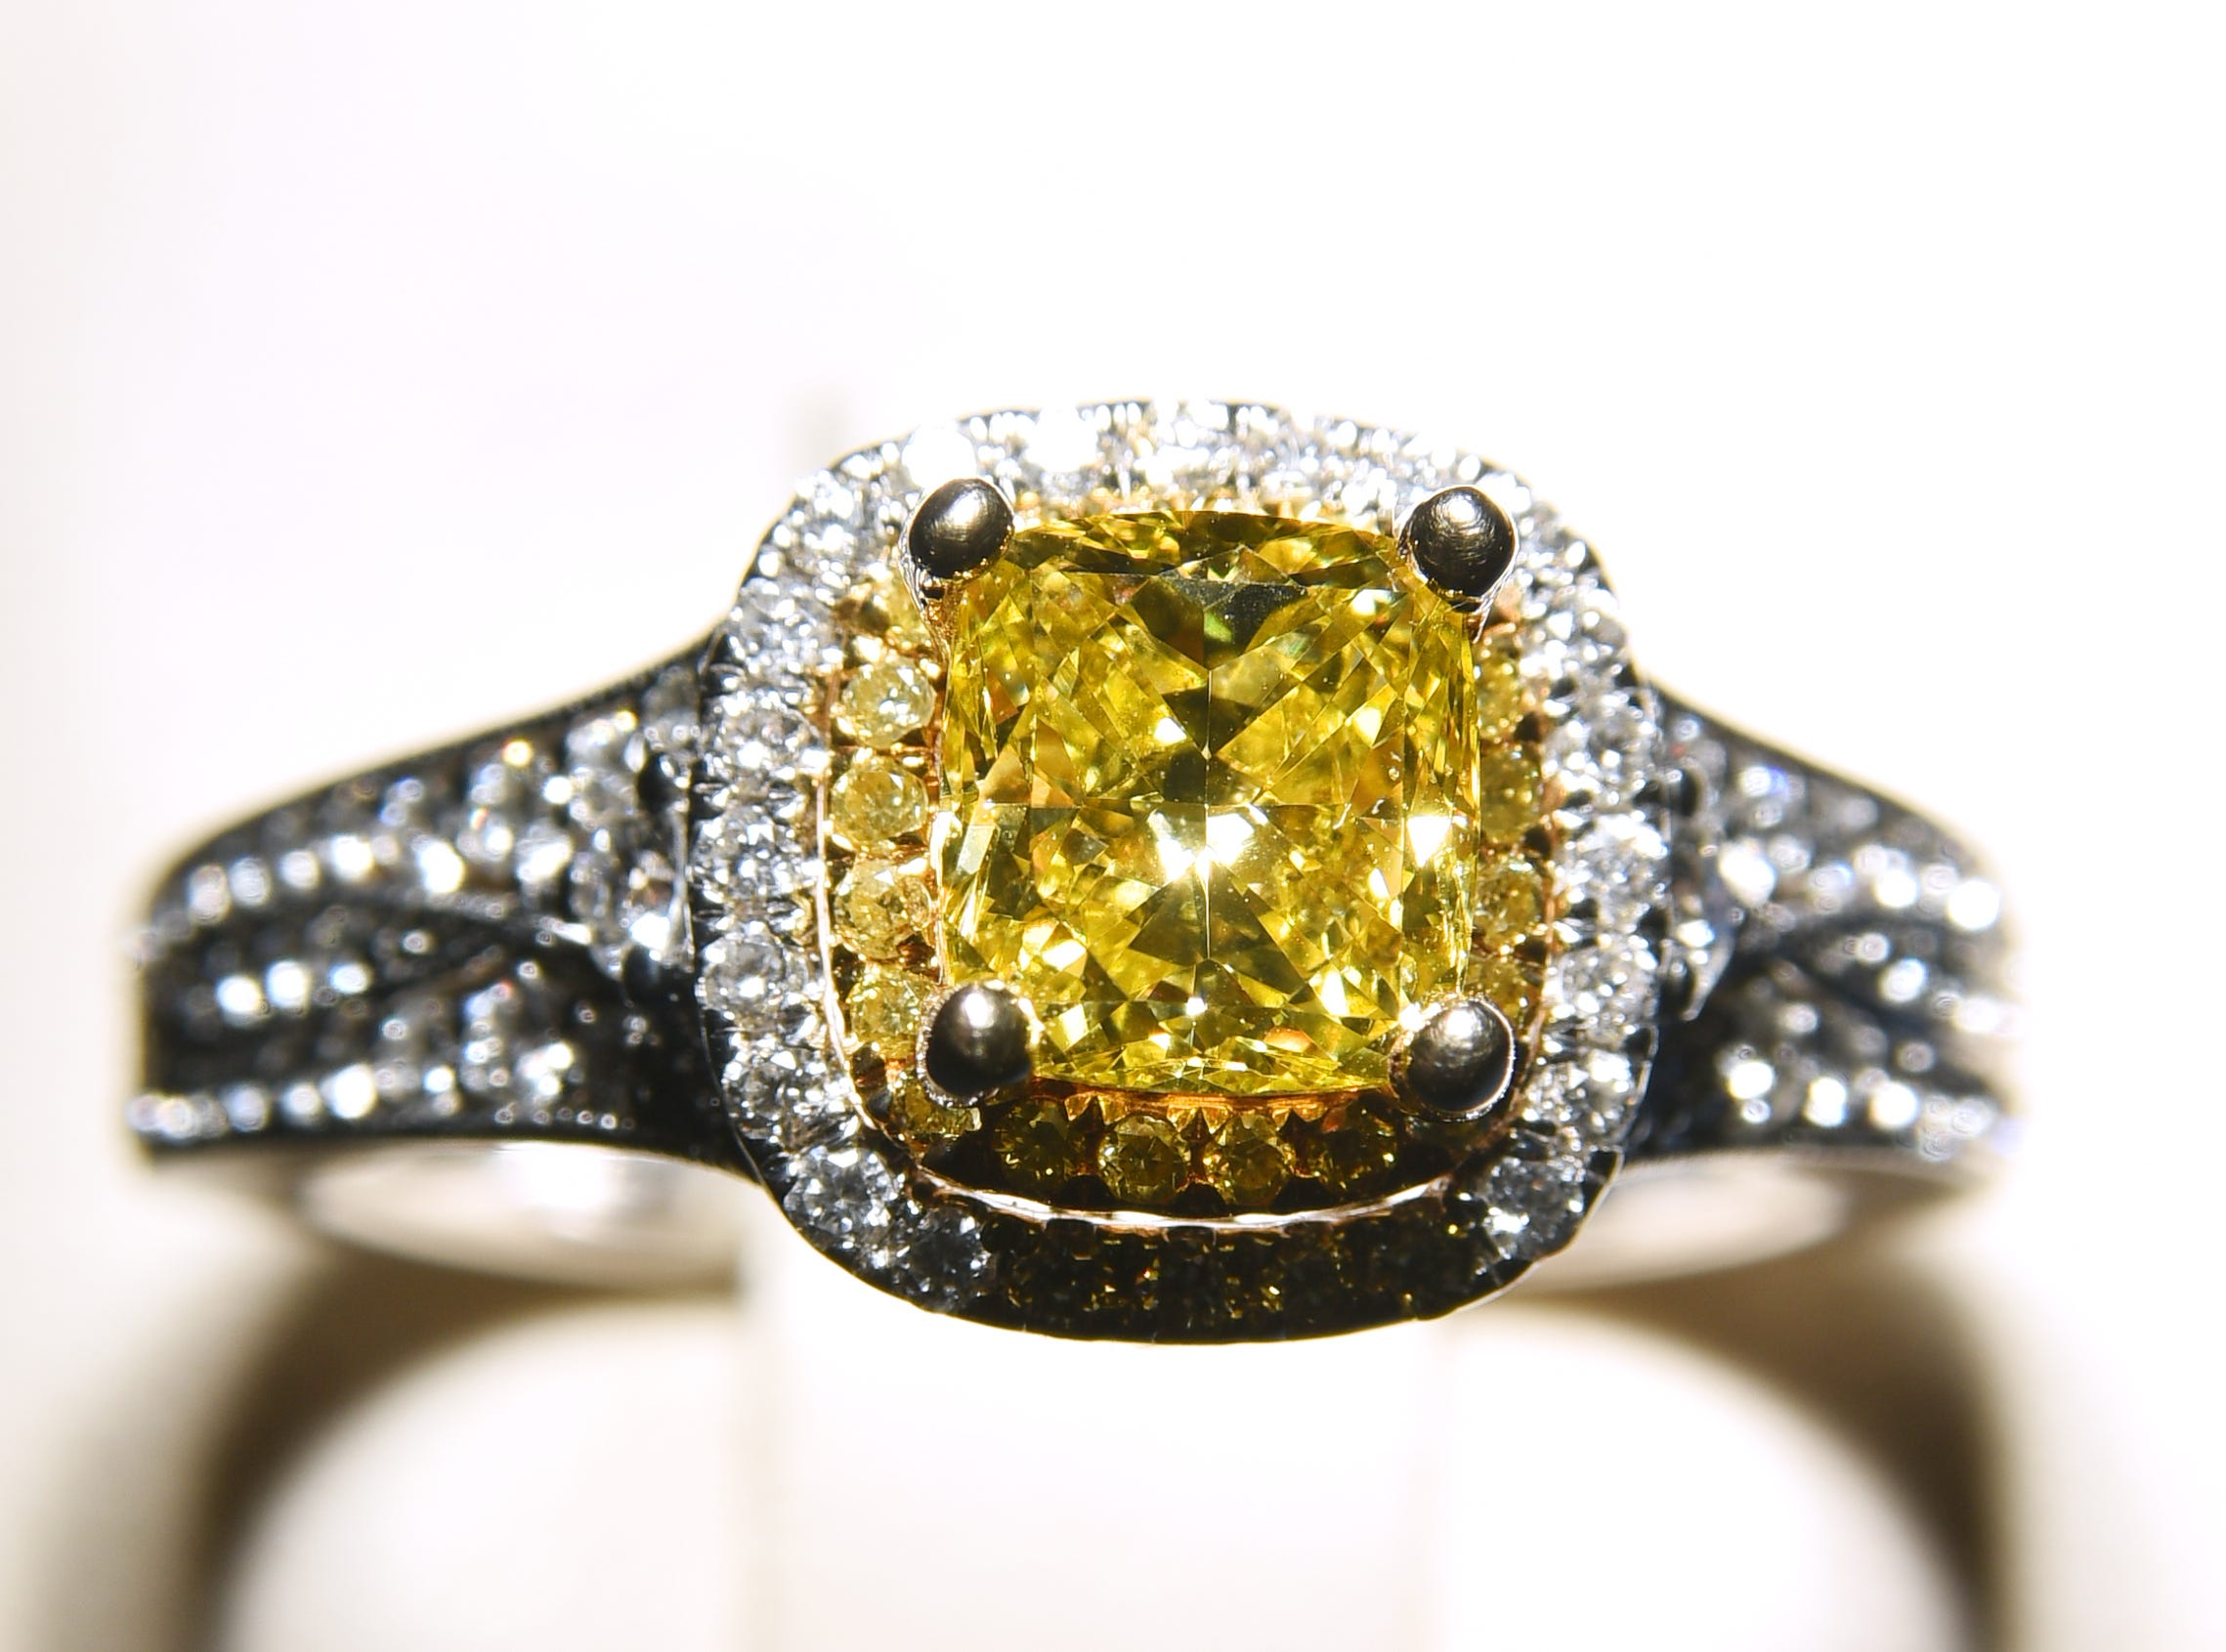 A yellow and white diamond ring from Pace Jewelers.